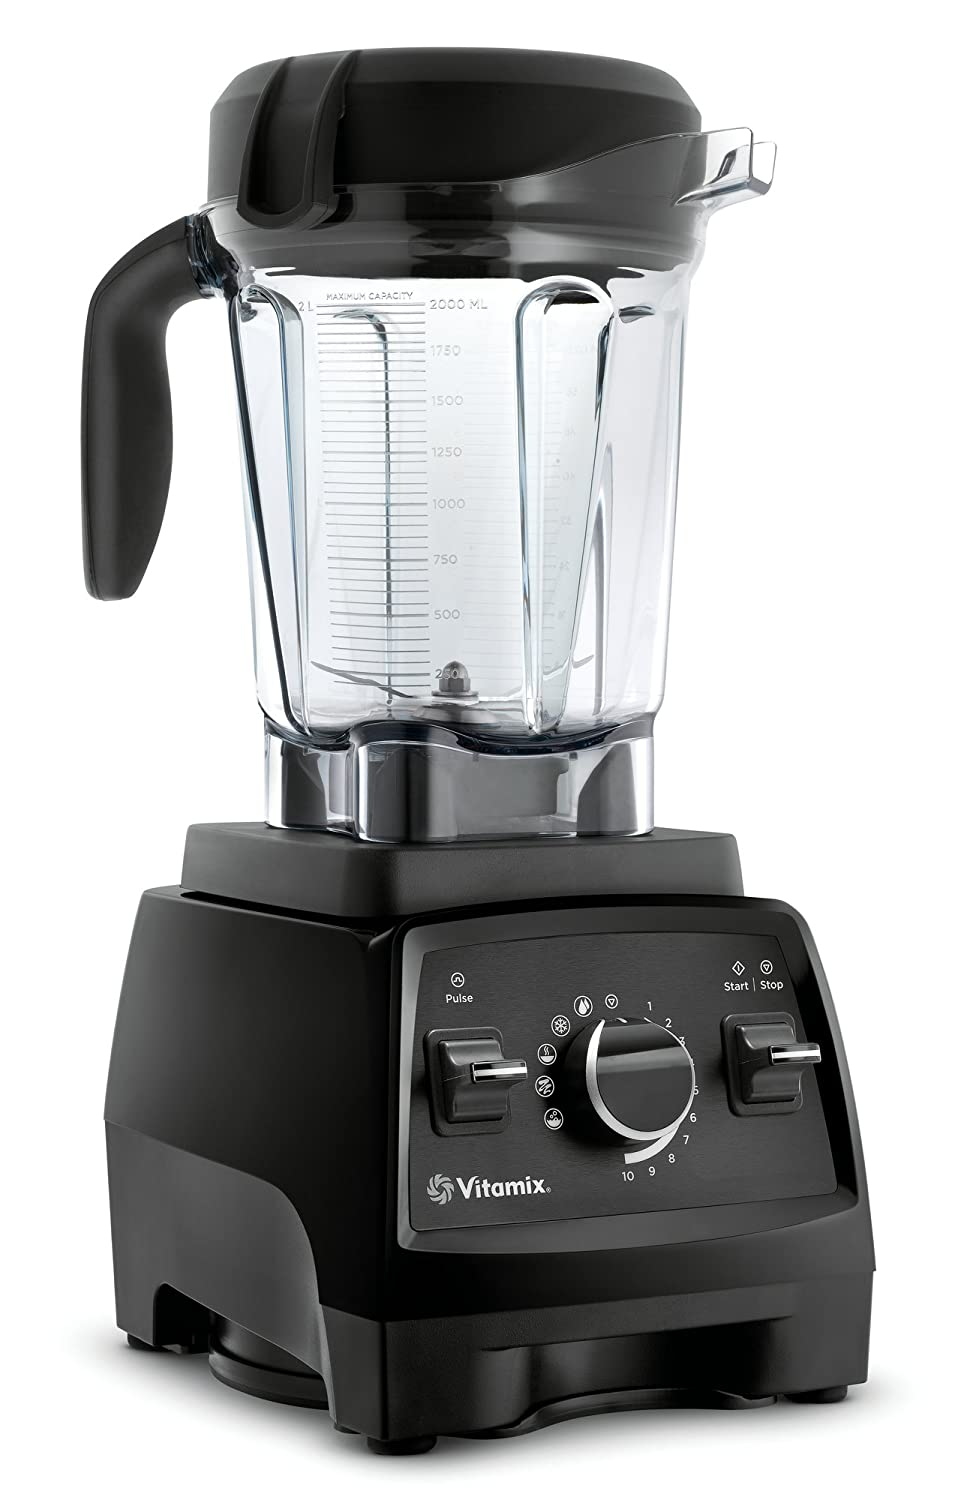 Top 10 Best Blender for Smoothies with Ice - Buyer's Guide 3